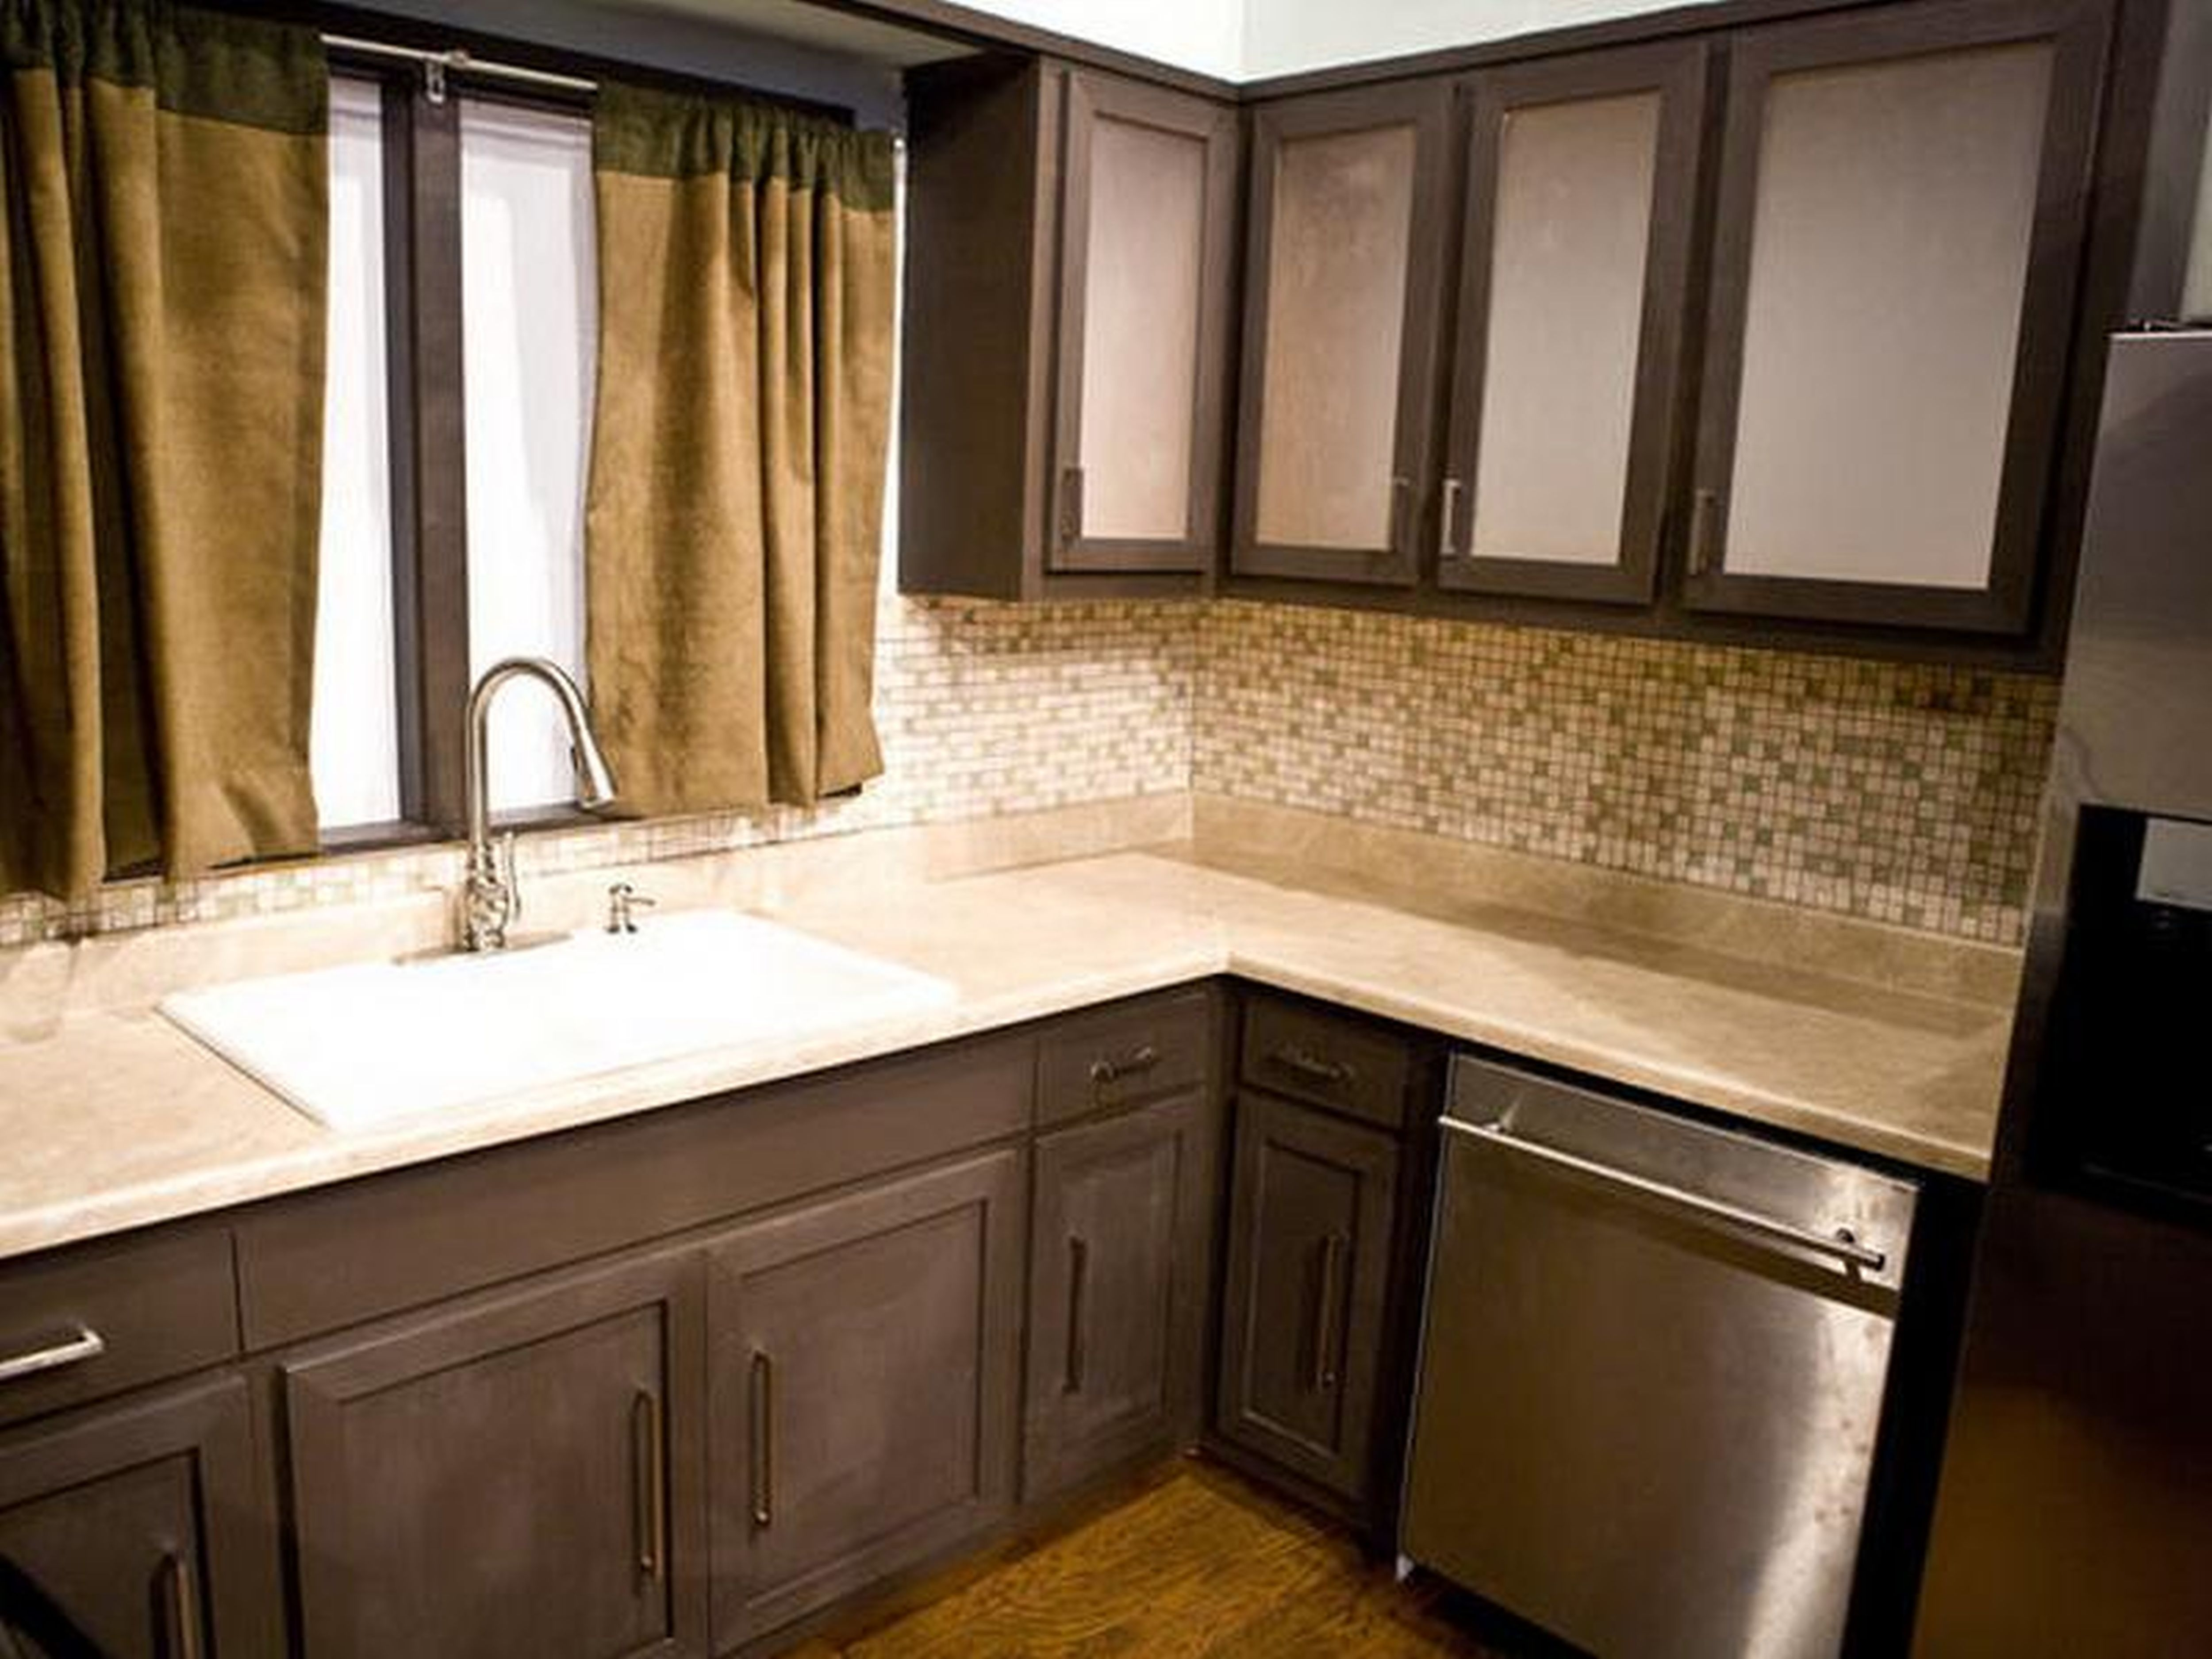 Top Cabinets To Lighten Small Kitchen Cabinets Kitchen Countertops Kitchen Cabinets